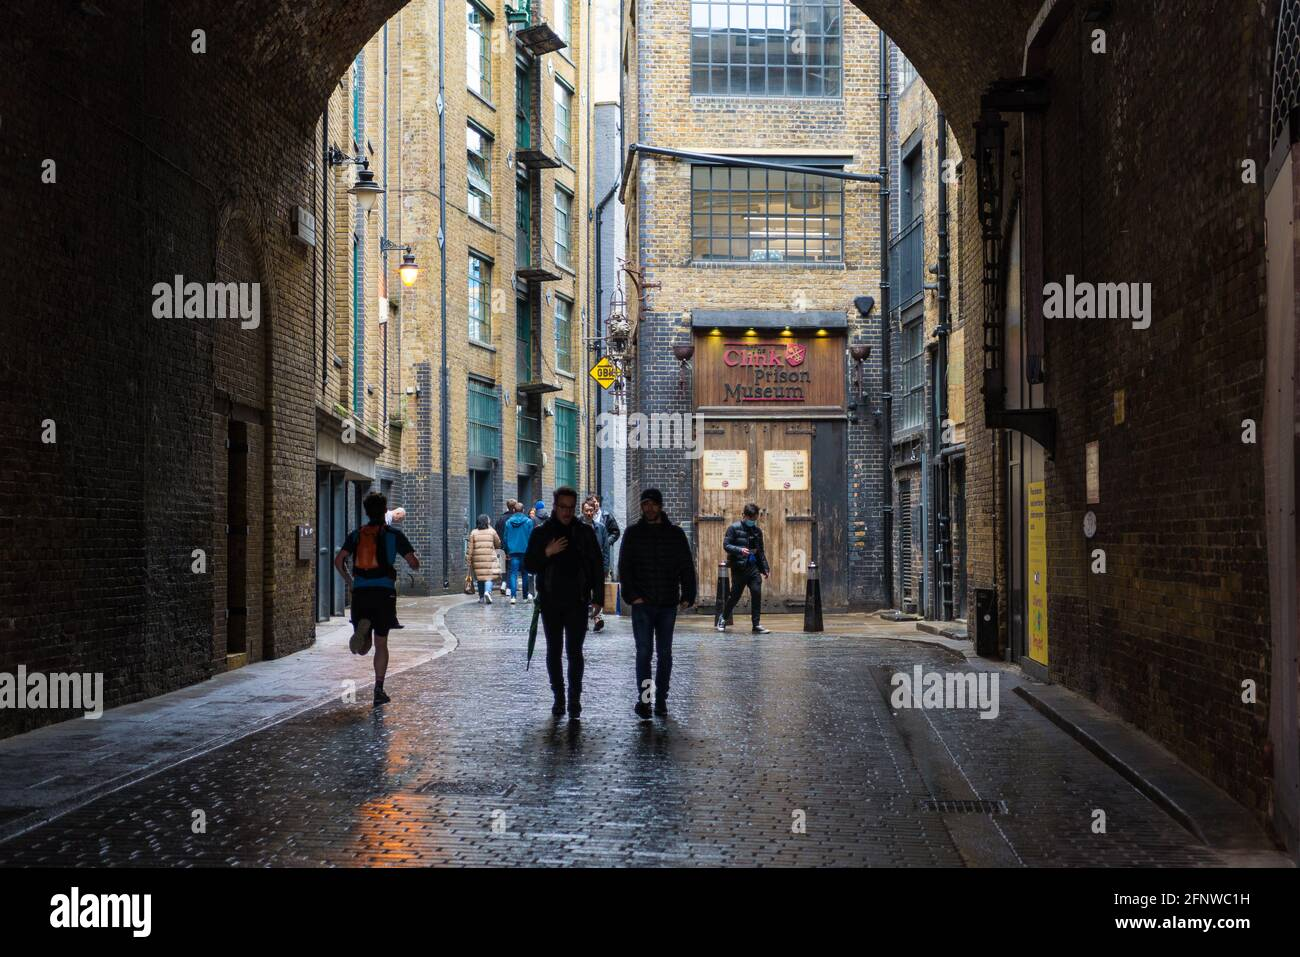 People walking in Clink Street, a narrow cobbled street in the Bankside district, London Borough of Southwark, England, UK Stock Photo